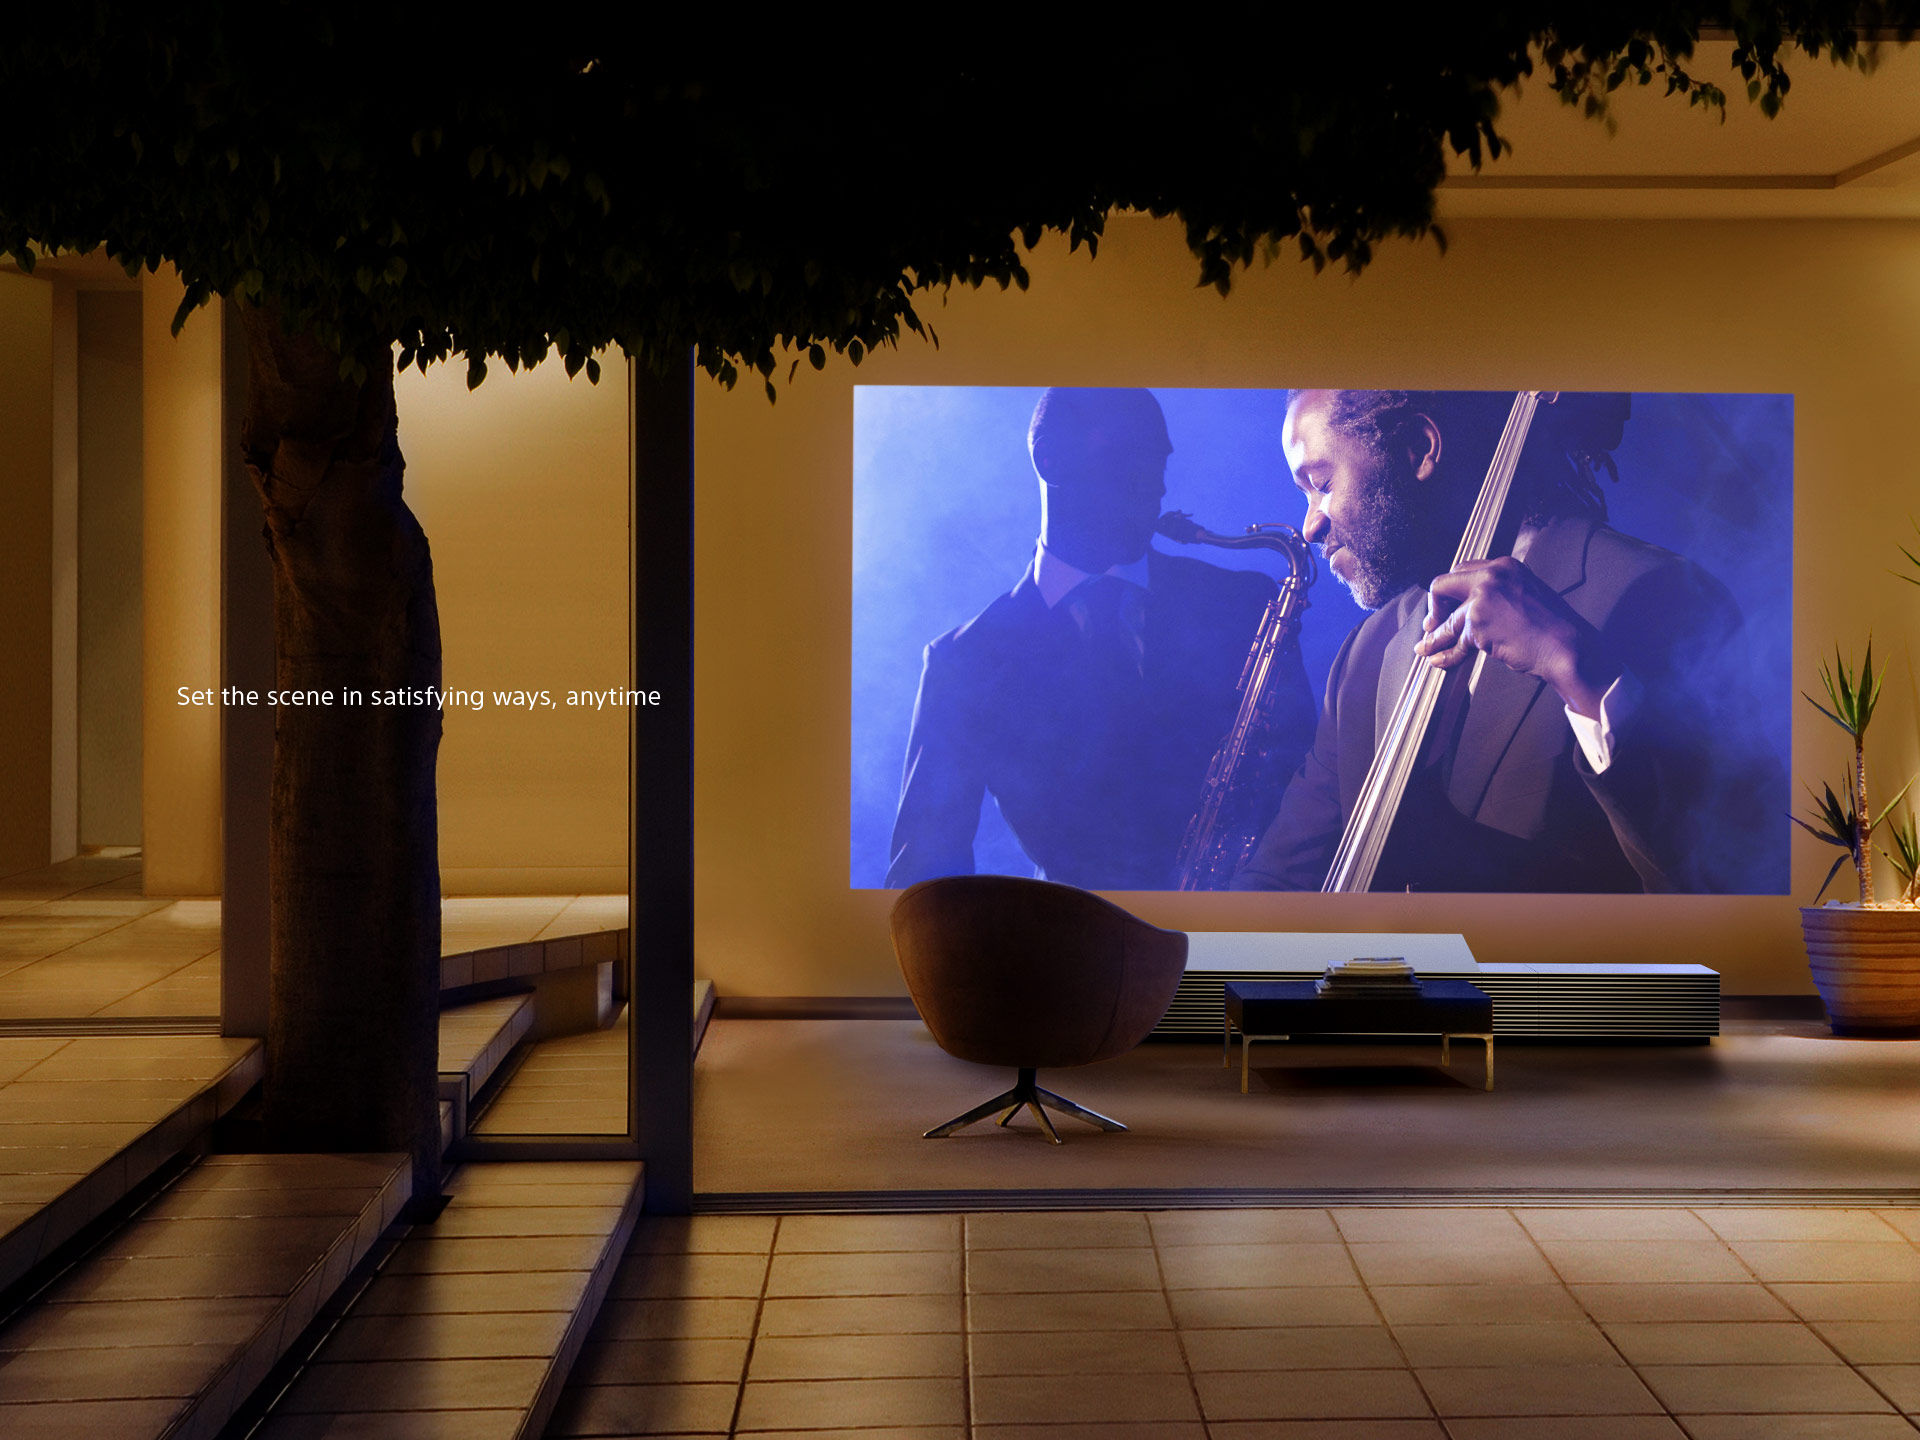 Sony LSPX-W1S ultra short throw projector - Photograph courtesy of Sony Corporation